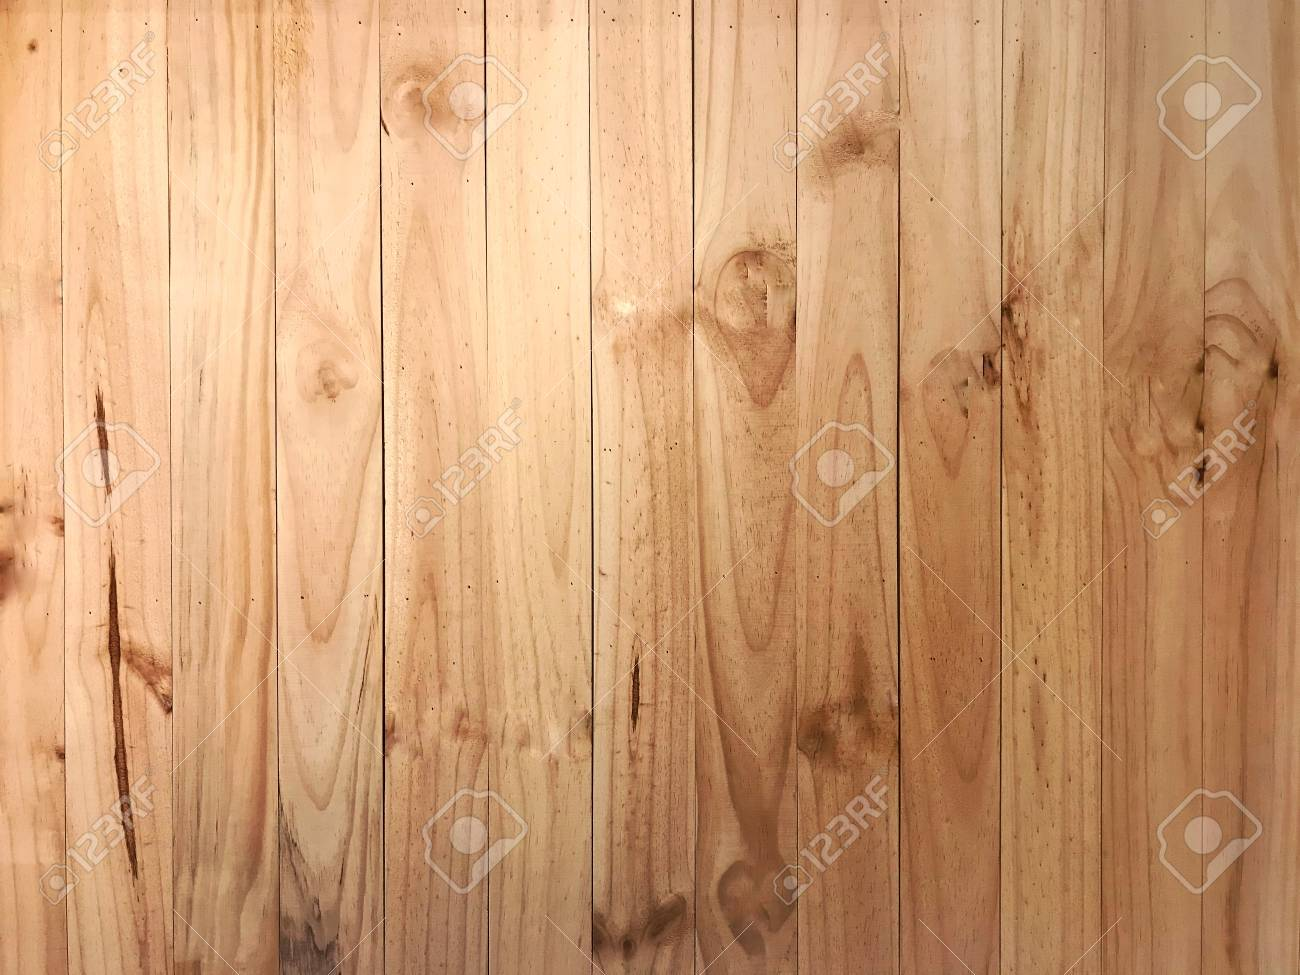 Pine Wood Plank Brown Texture Background Wallpaper Concept